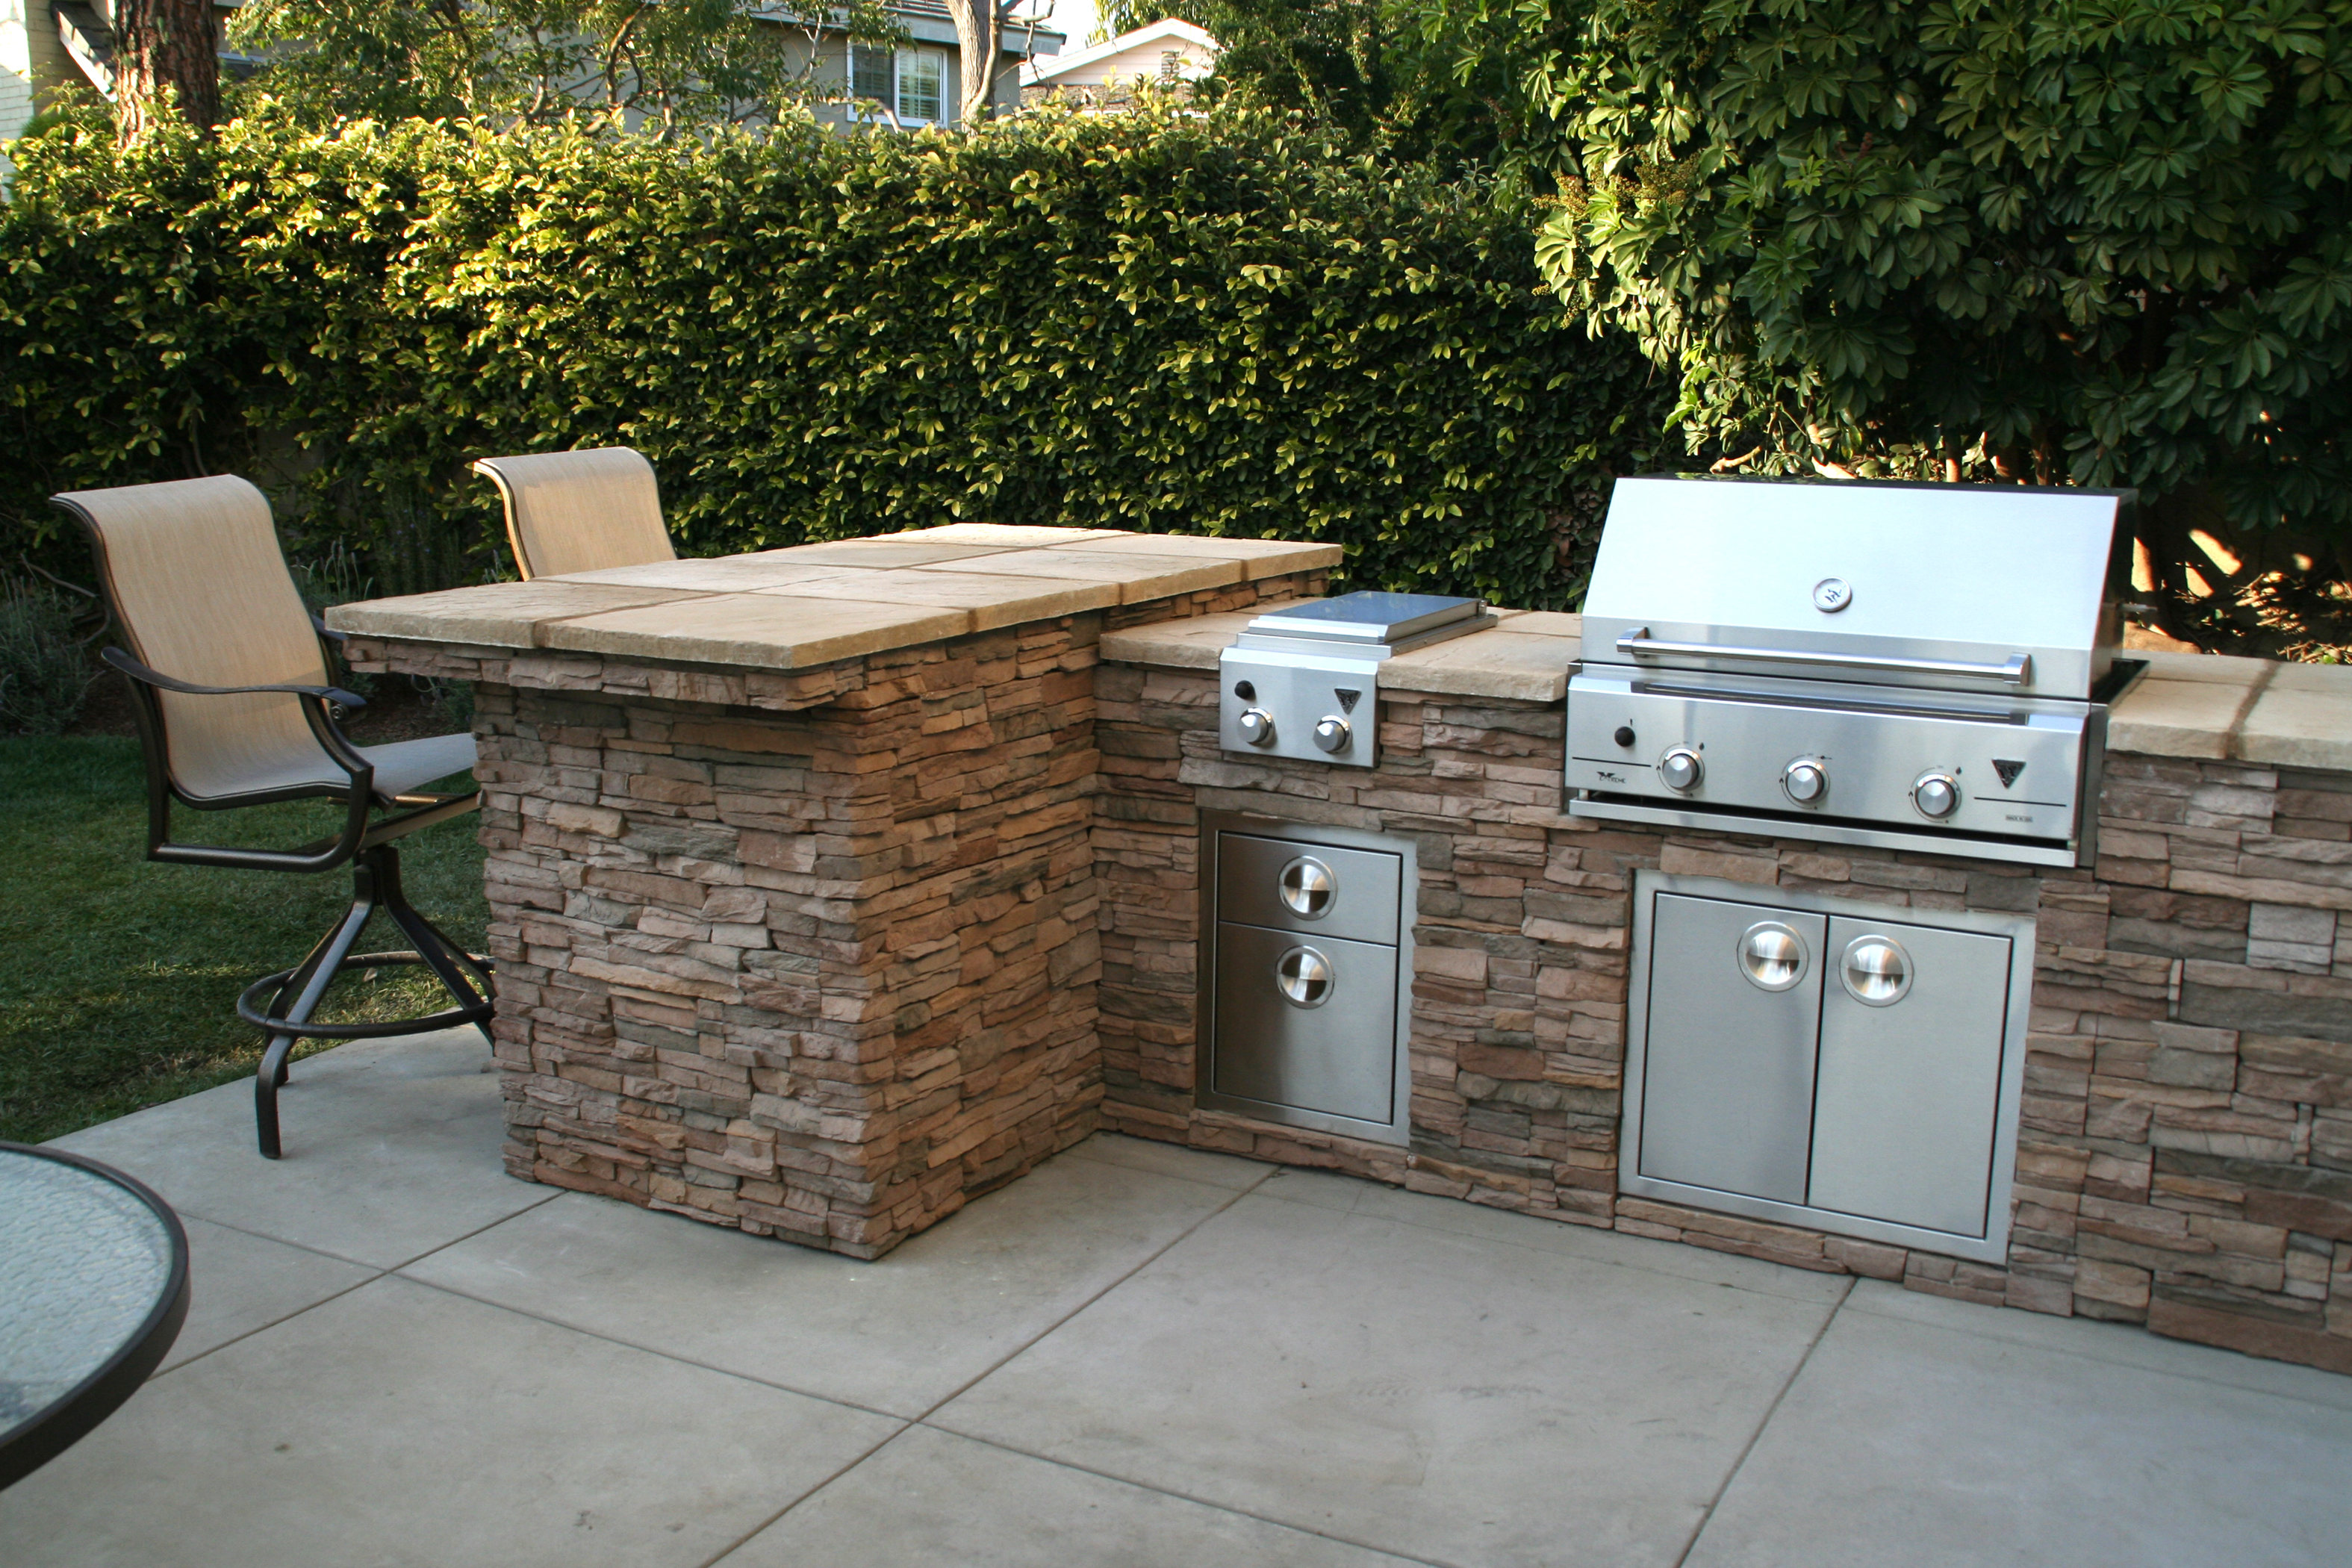 Outdoor Kitchen for any entertainer